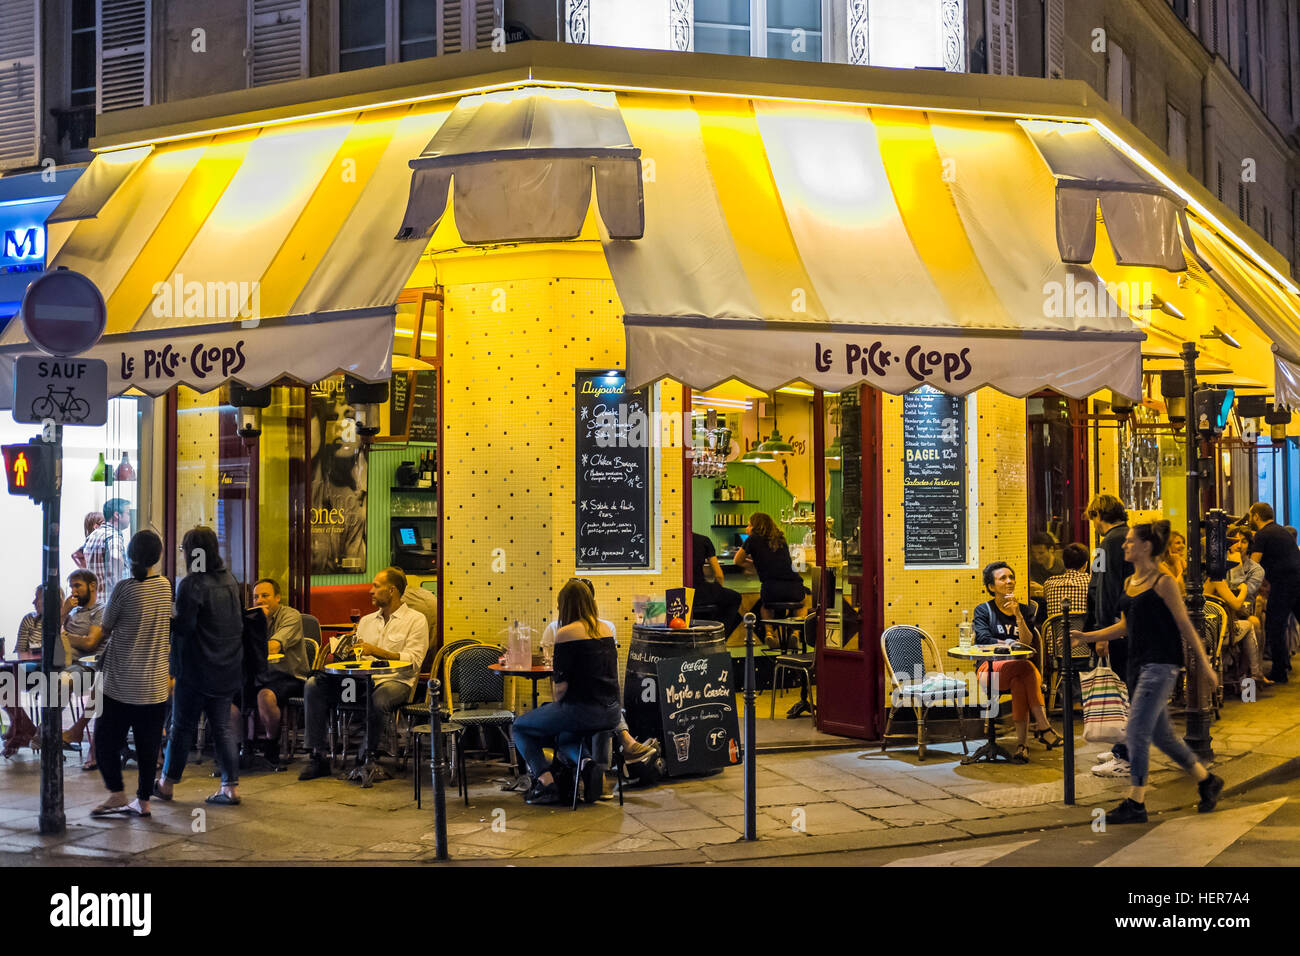 le pick clops cafe brasserie at night stock photo royalty free image 129588428 alamy. Black Bedroom Furniture Sets. Home Design Ideas